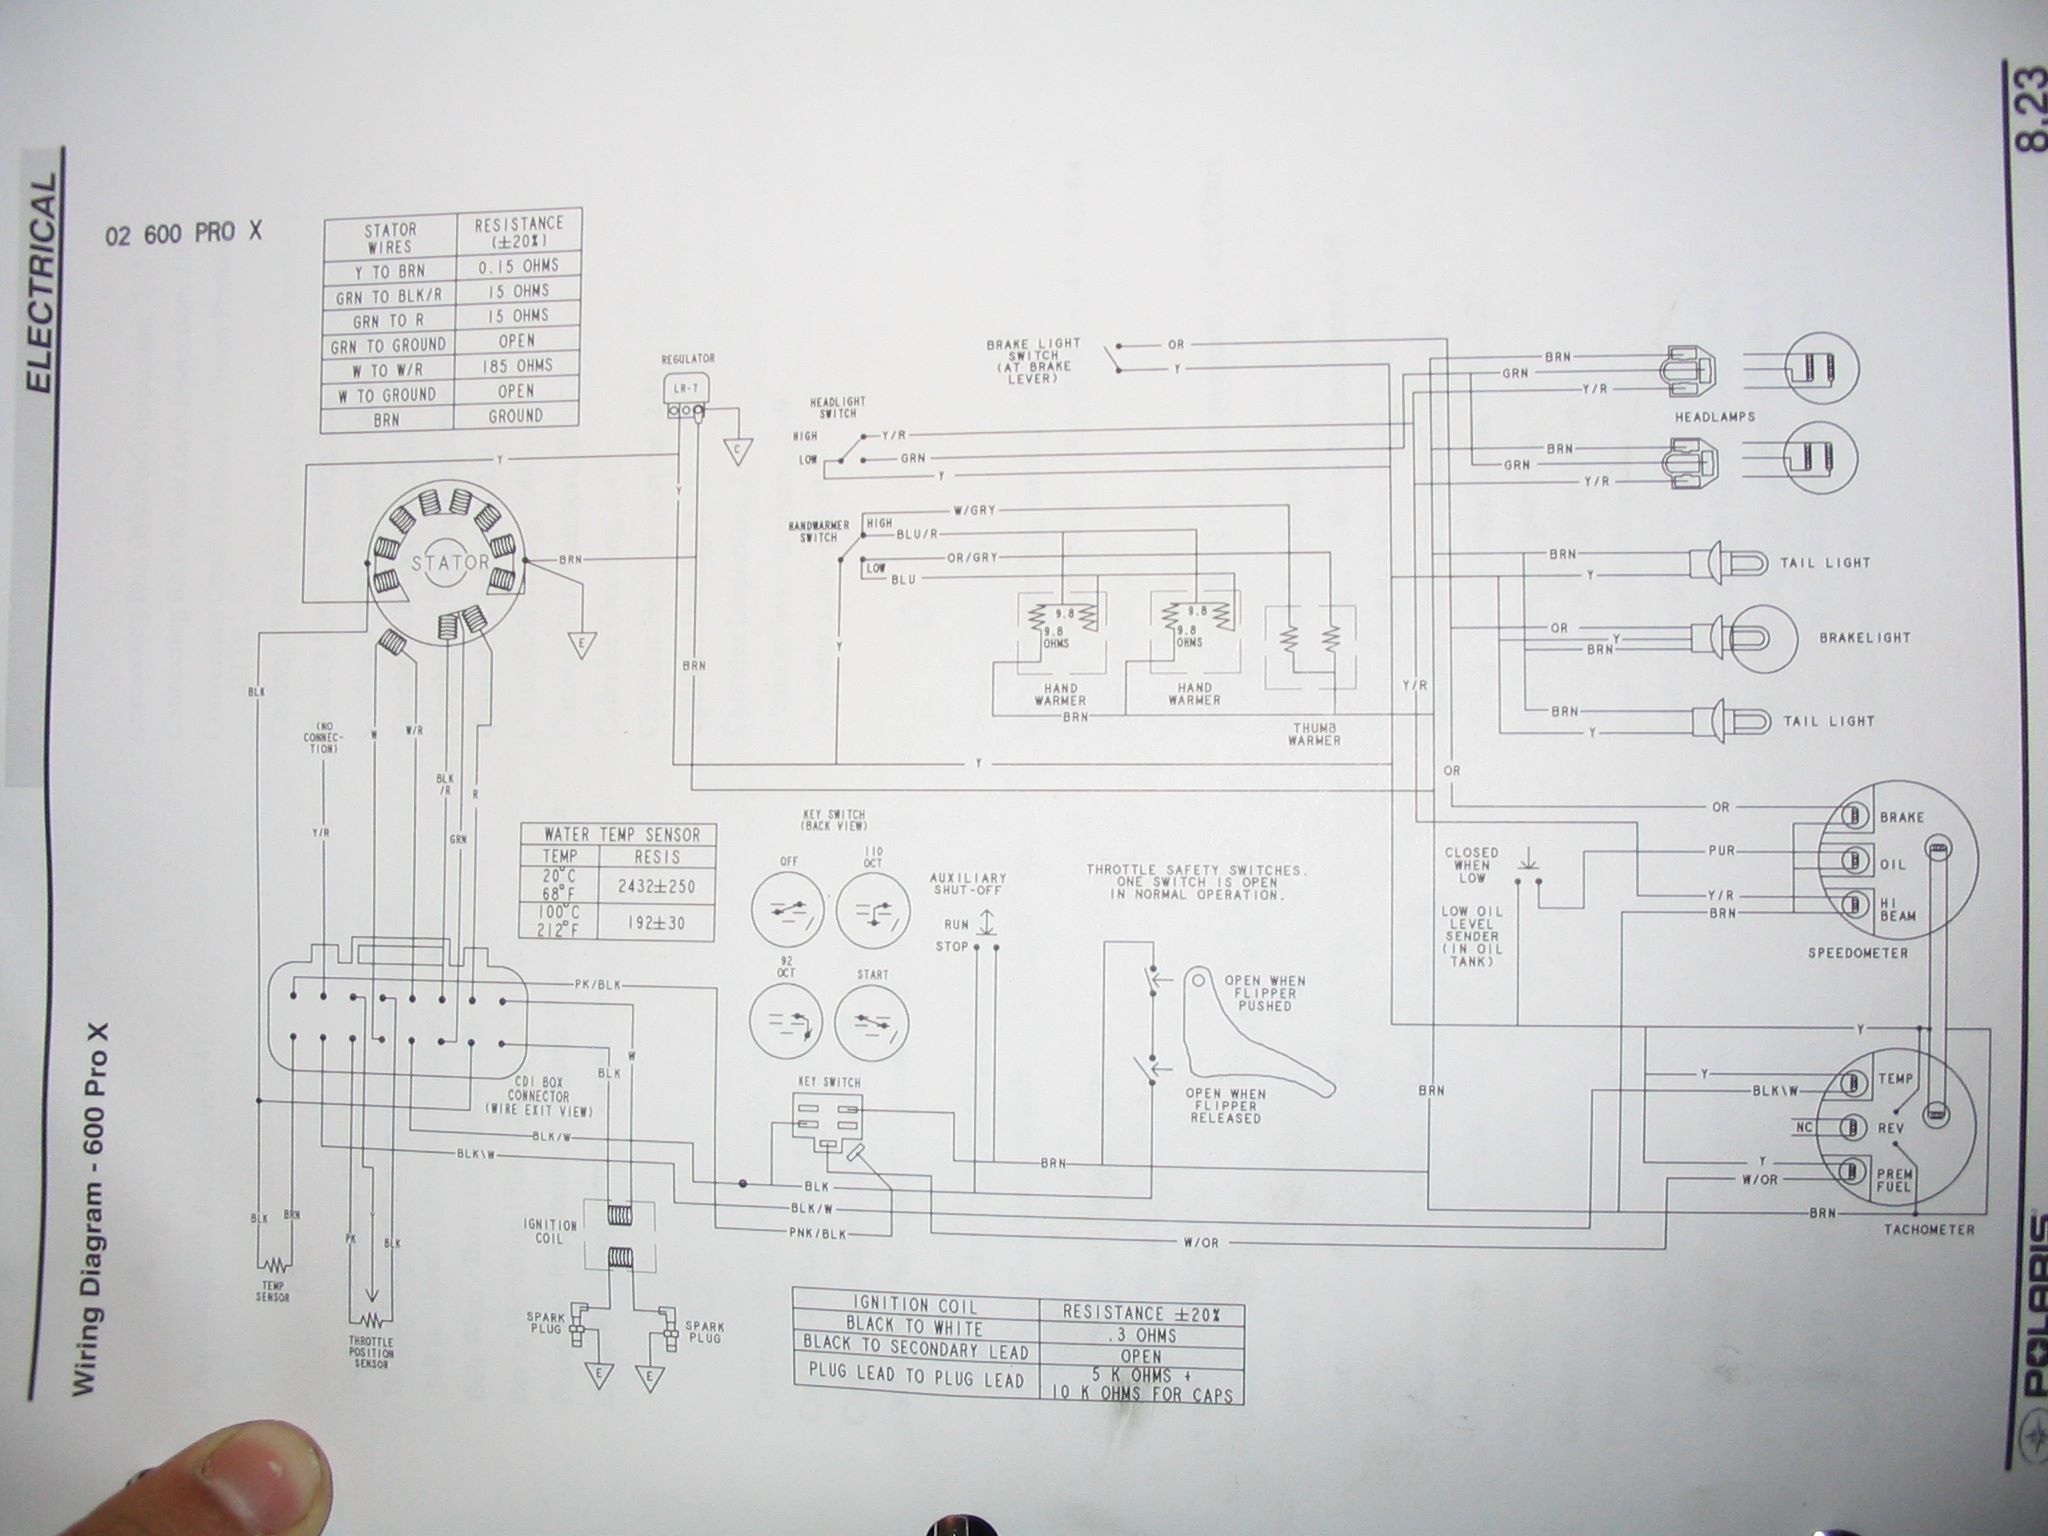 Polaris 600 Wiring Diagram Detailed Schematic Diagrams Sea Pro Schematics U2022 2005 Sportsman